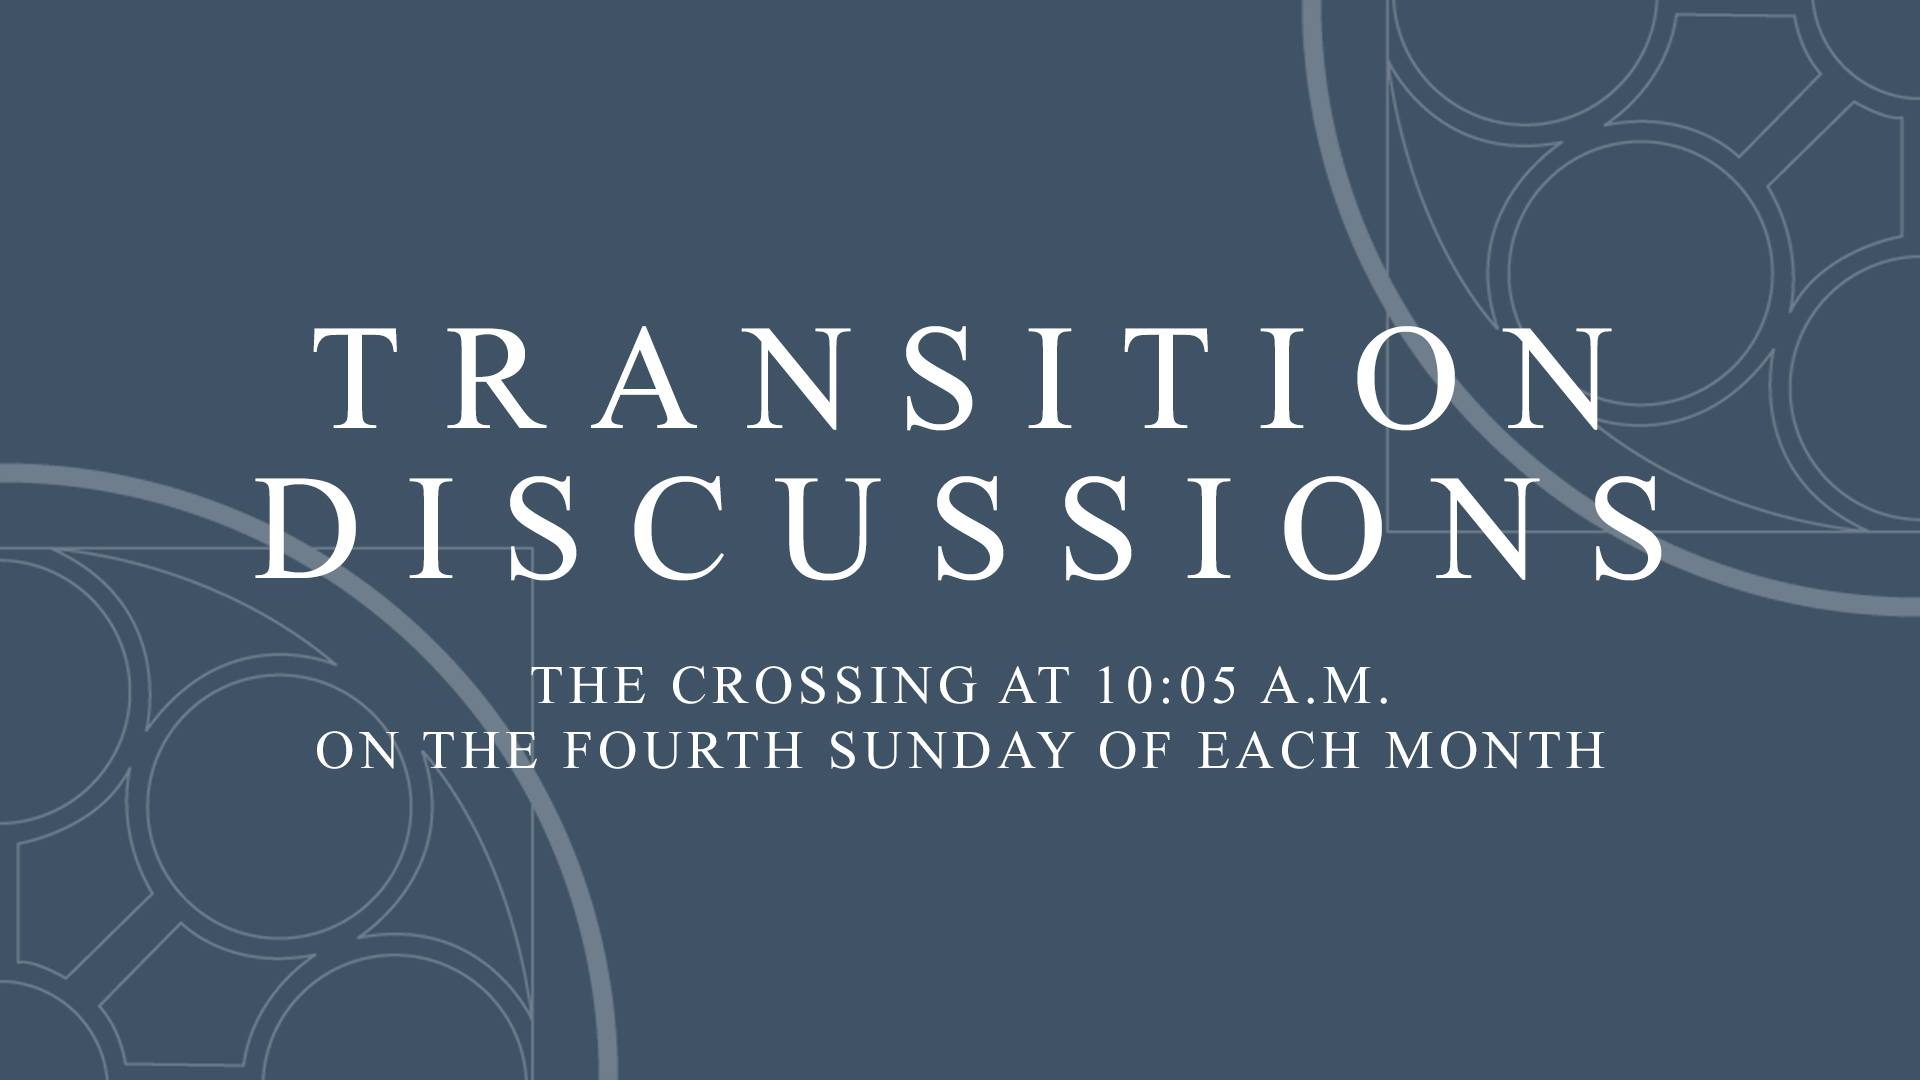 Transition Discussions -  The Transition Team is working to provide regular updates on the progress of the pastoral transition. Meet with members of the transition Team in the Crossing at 10:05 a.m. on the fourth Sunday of the month for an informal discussion on our transition. You can also send questions to  transition@napc.org